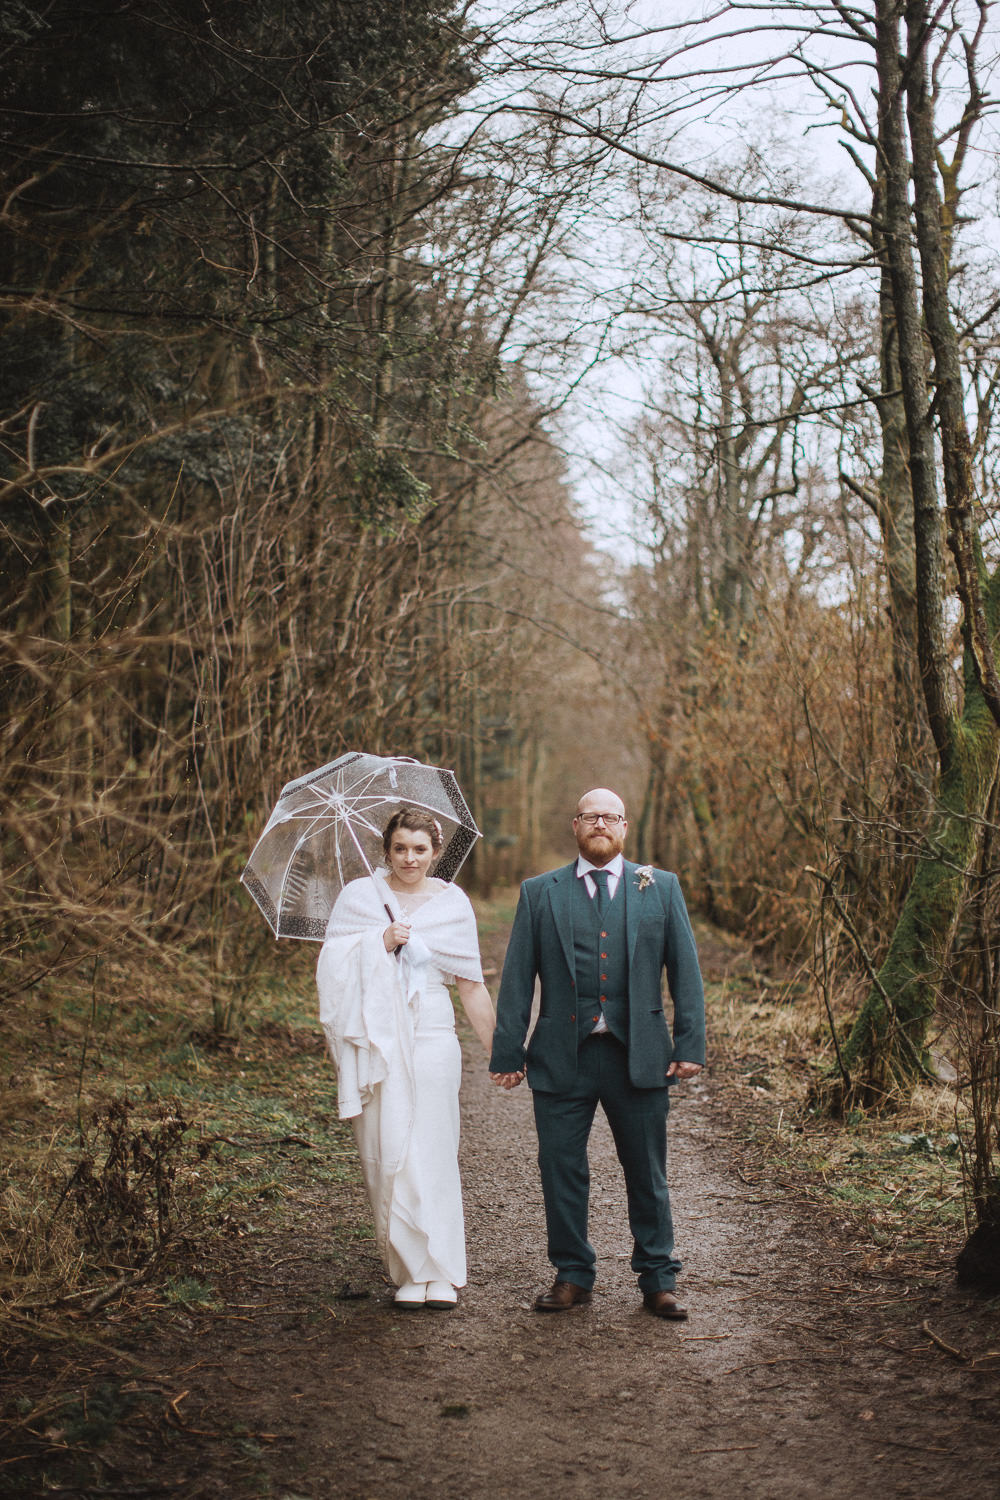 bride and groom standing together in the country while the bride holds an umbrella